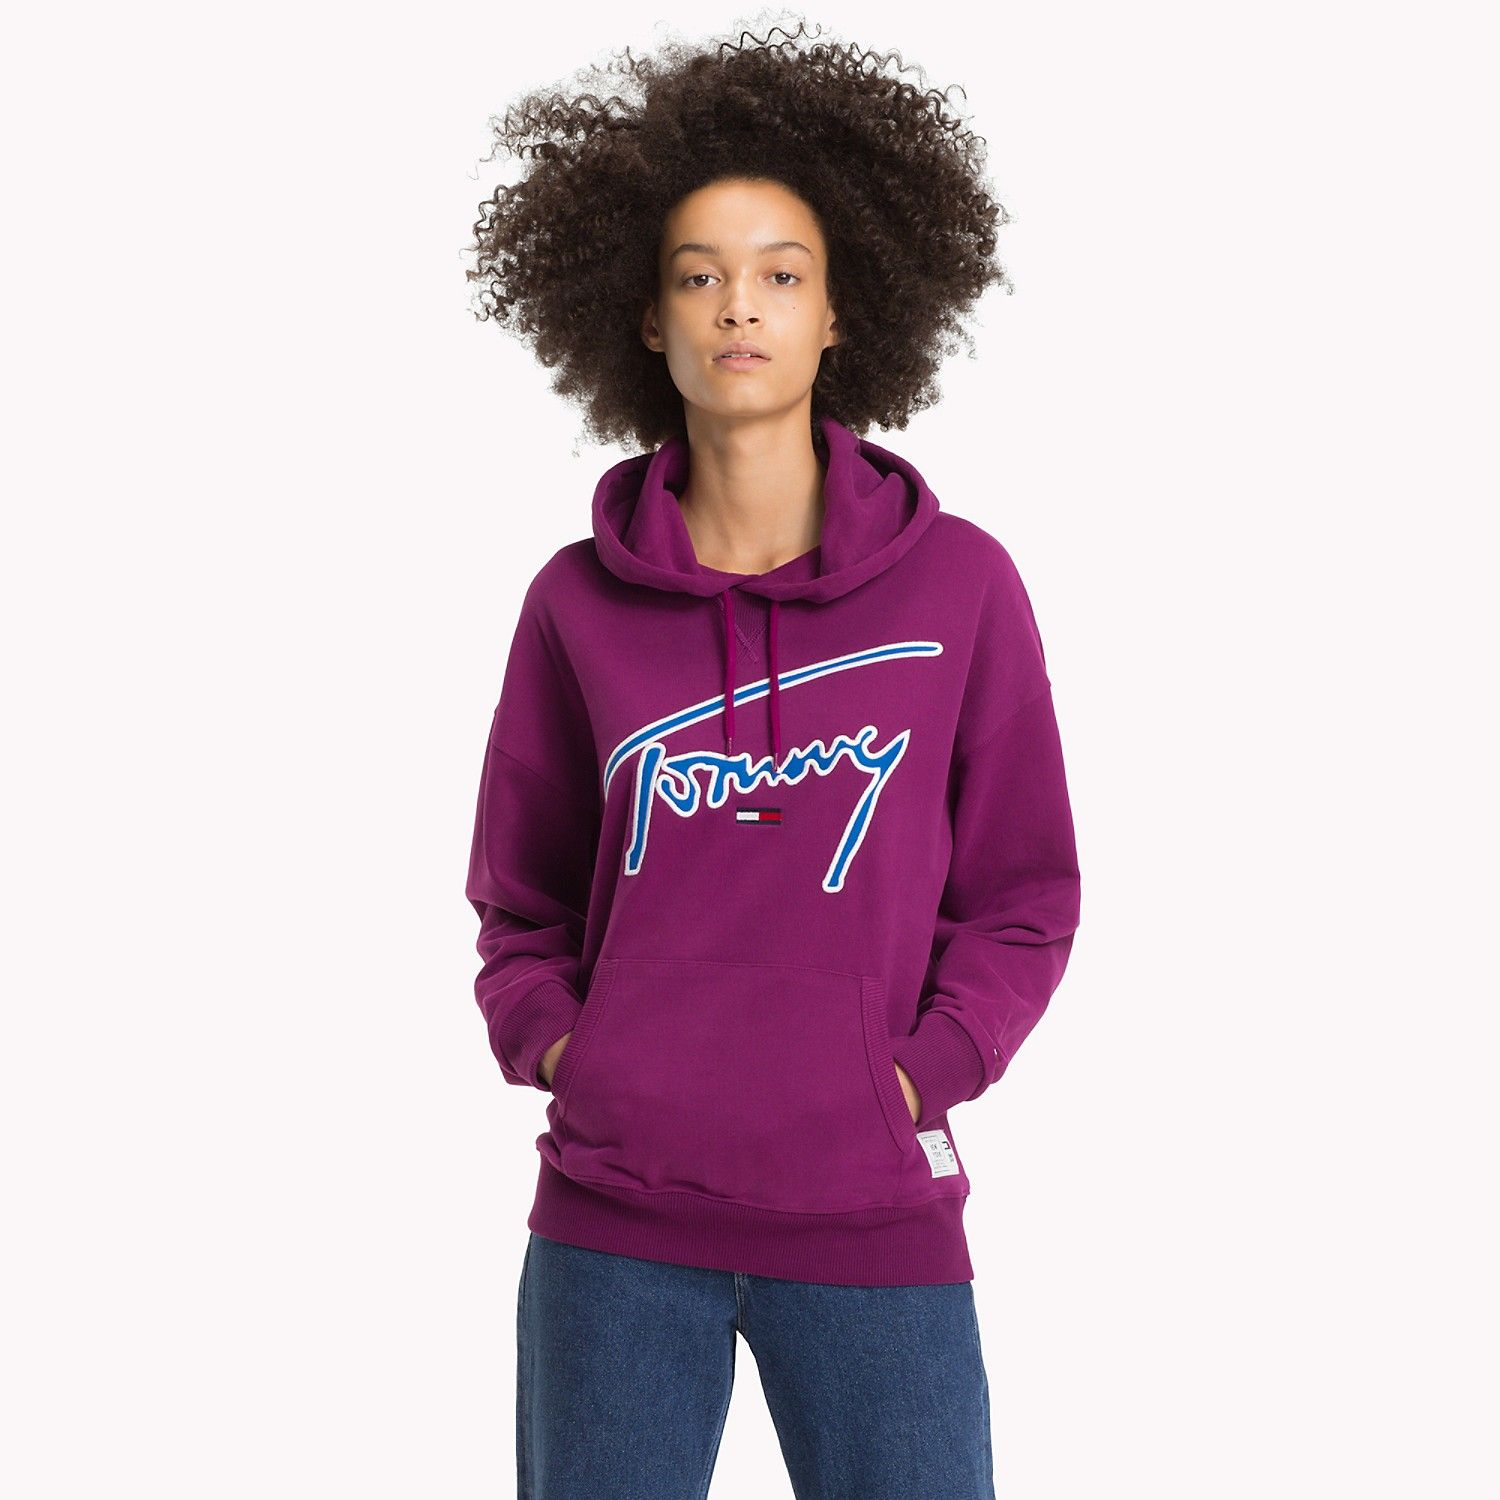 Tommy Jeans XPLORE Signature Hoodie Hoodies, Tommy jeans